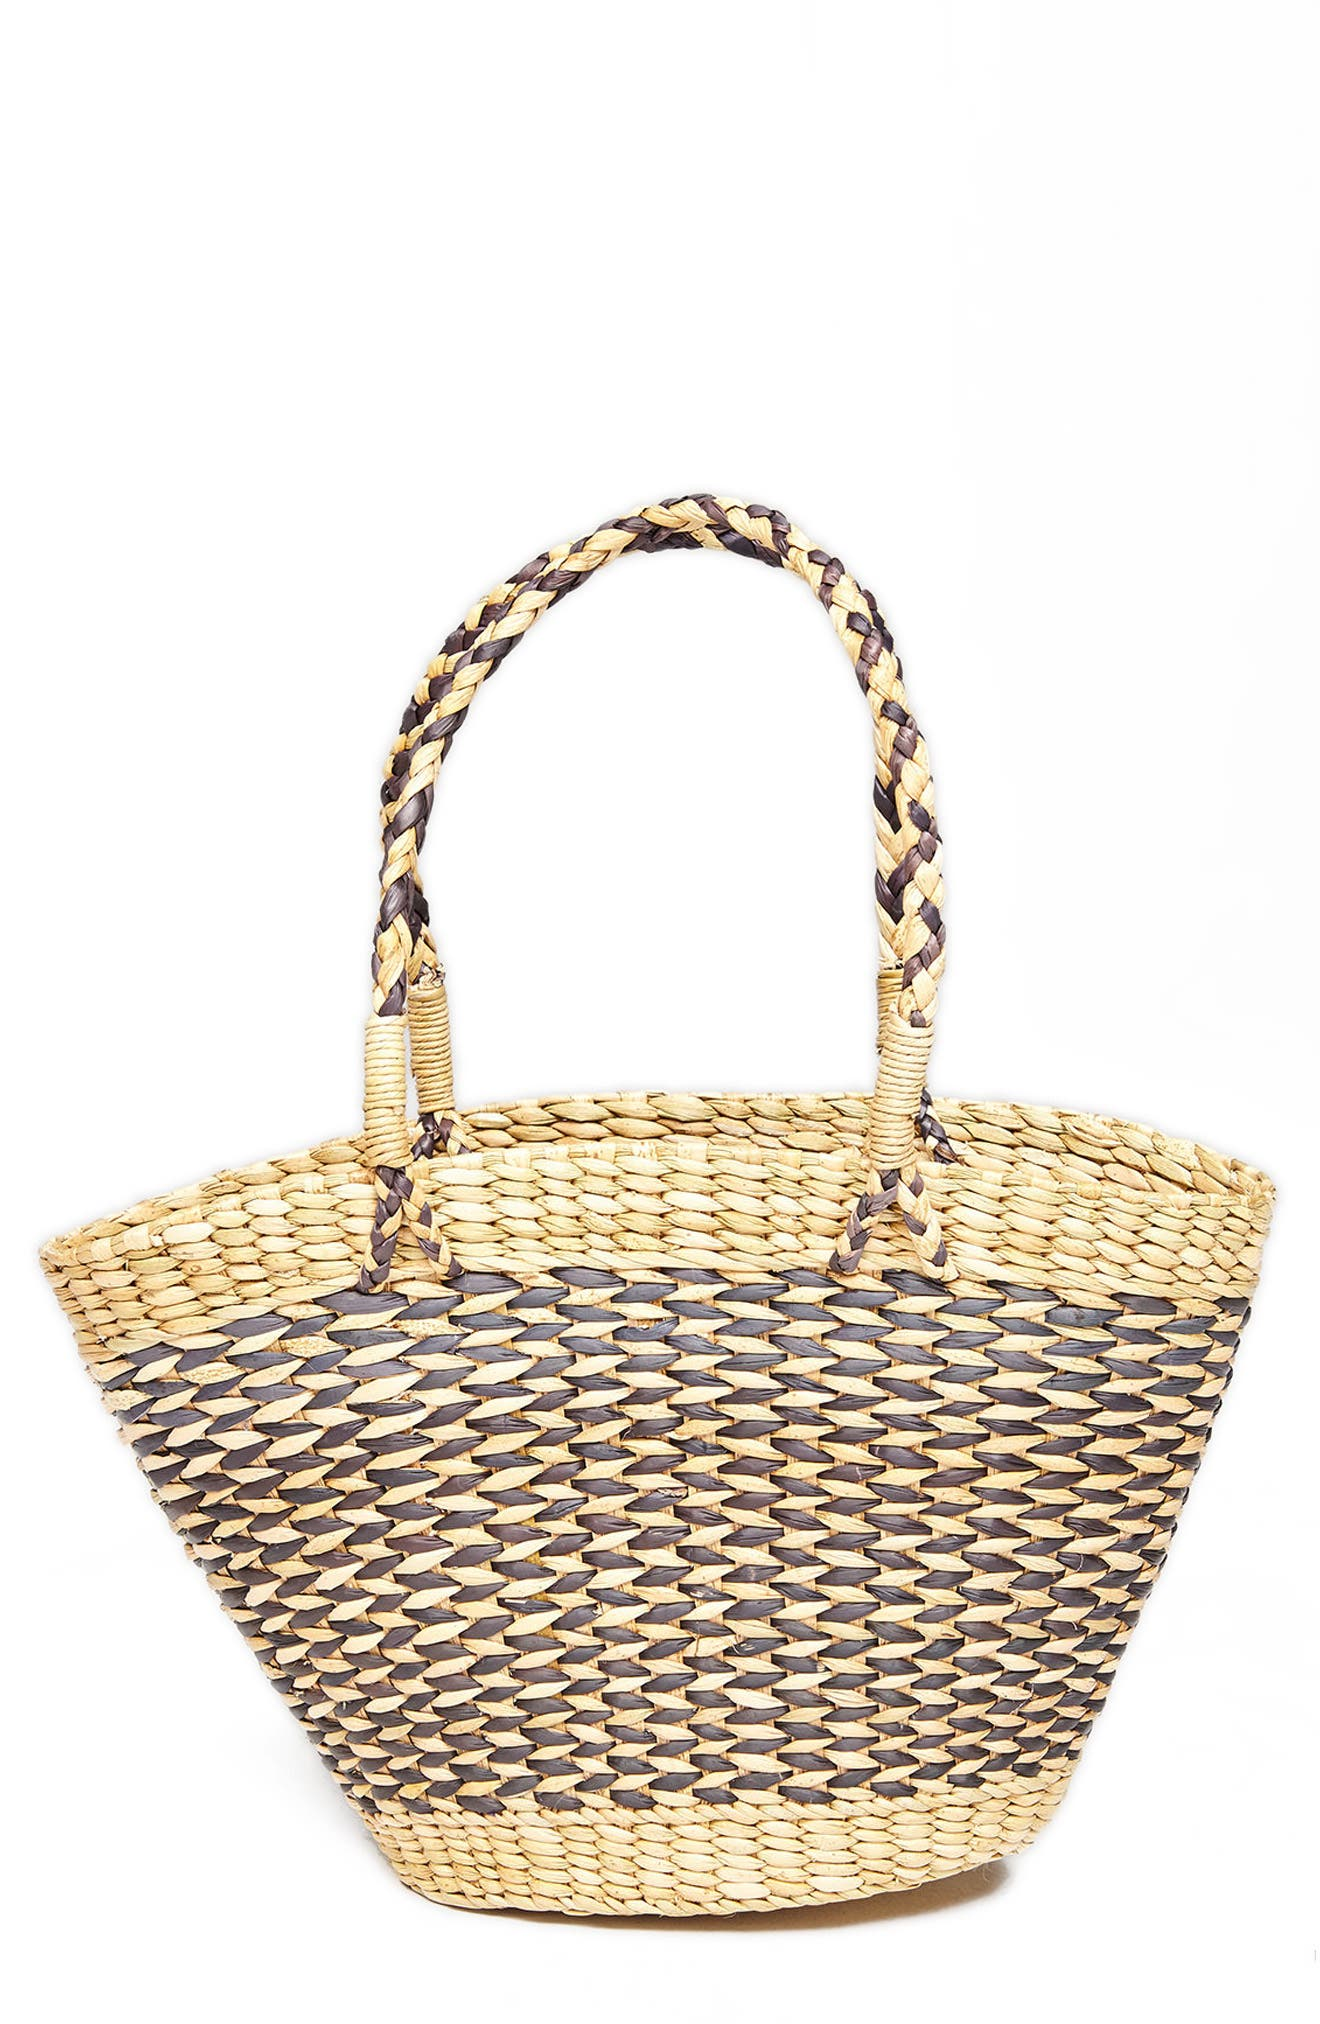 Goodie Basket Straw Tote,                             Main thumbnail 1, color,                             Stripe